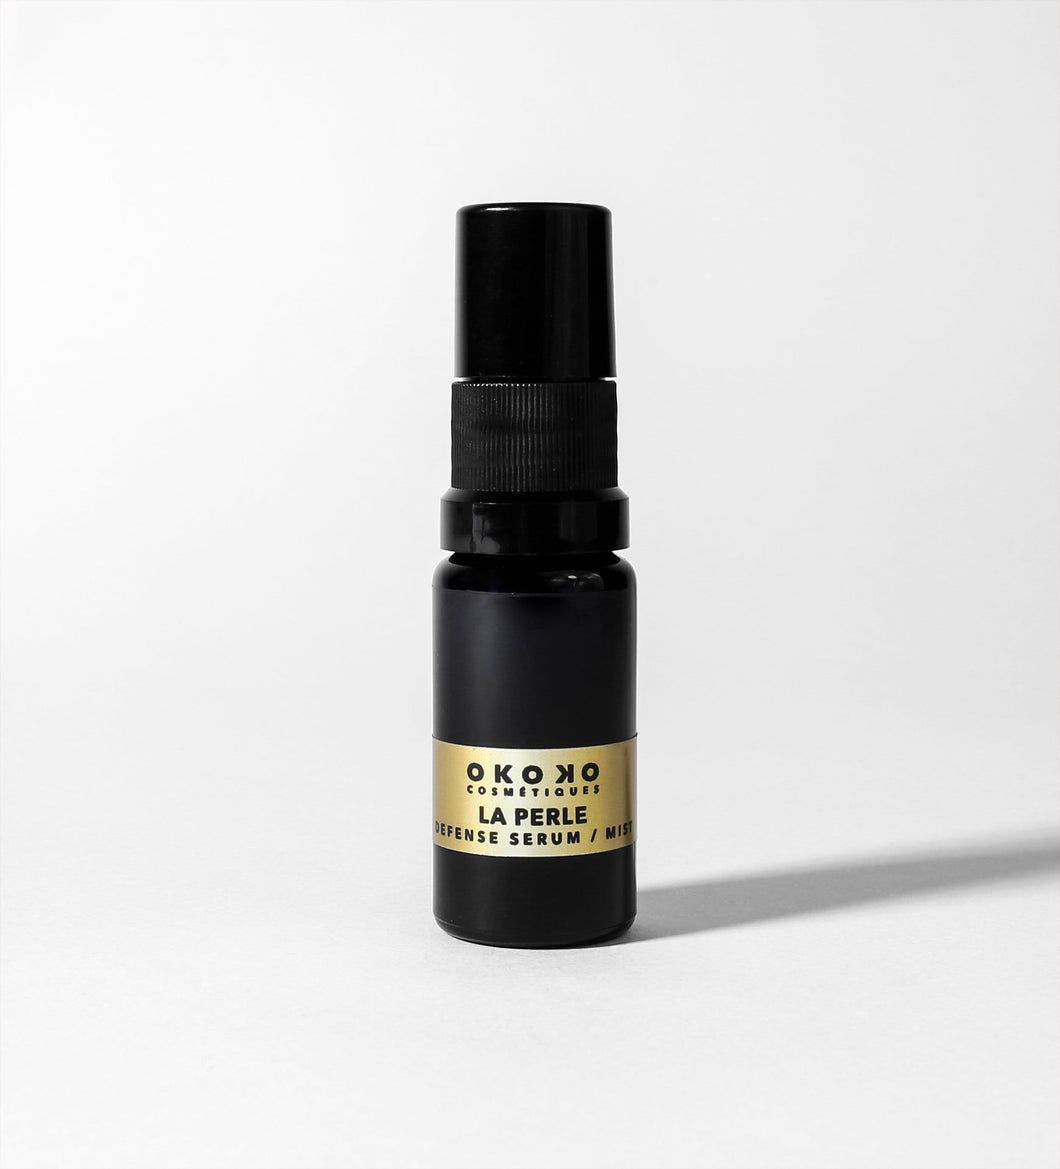 La Perle Spray serum (10 ml)